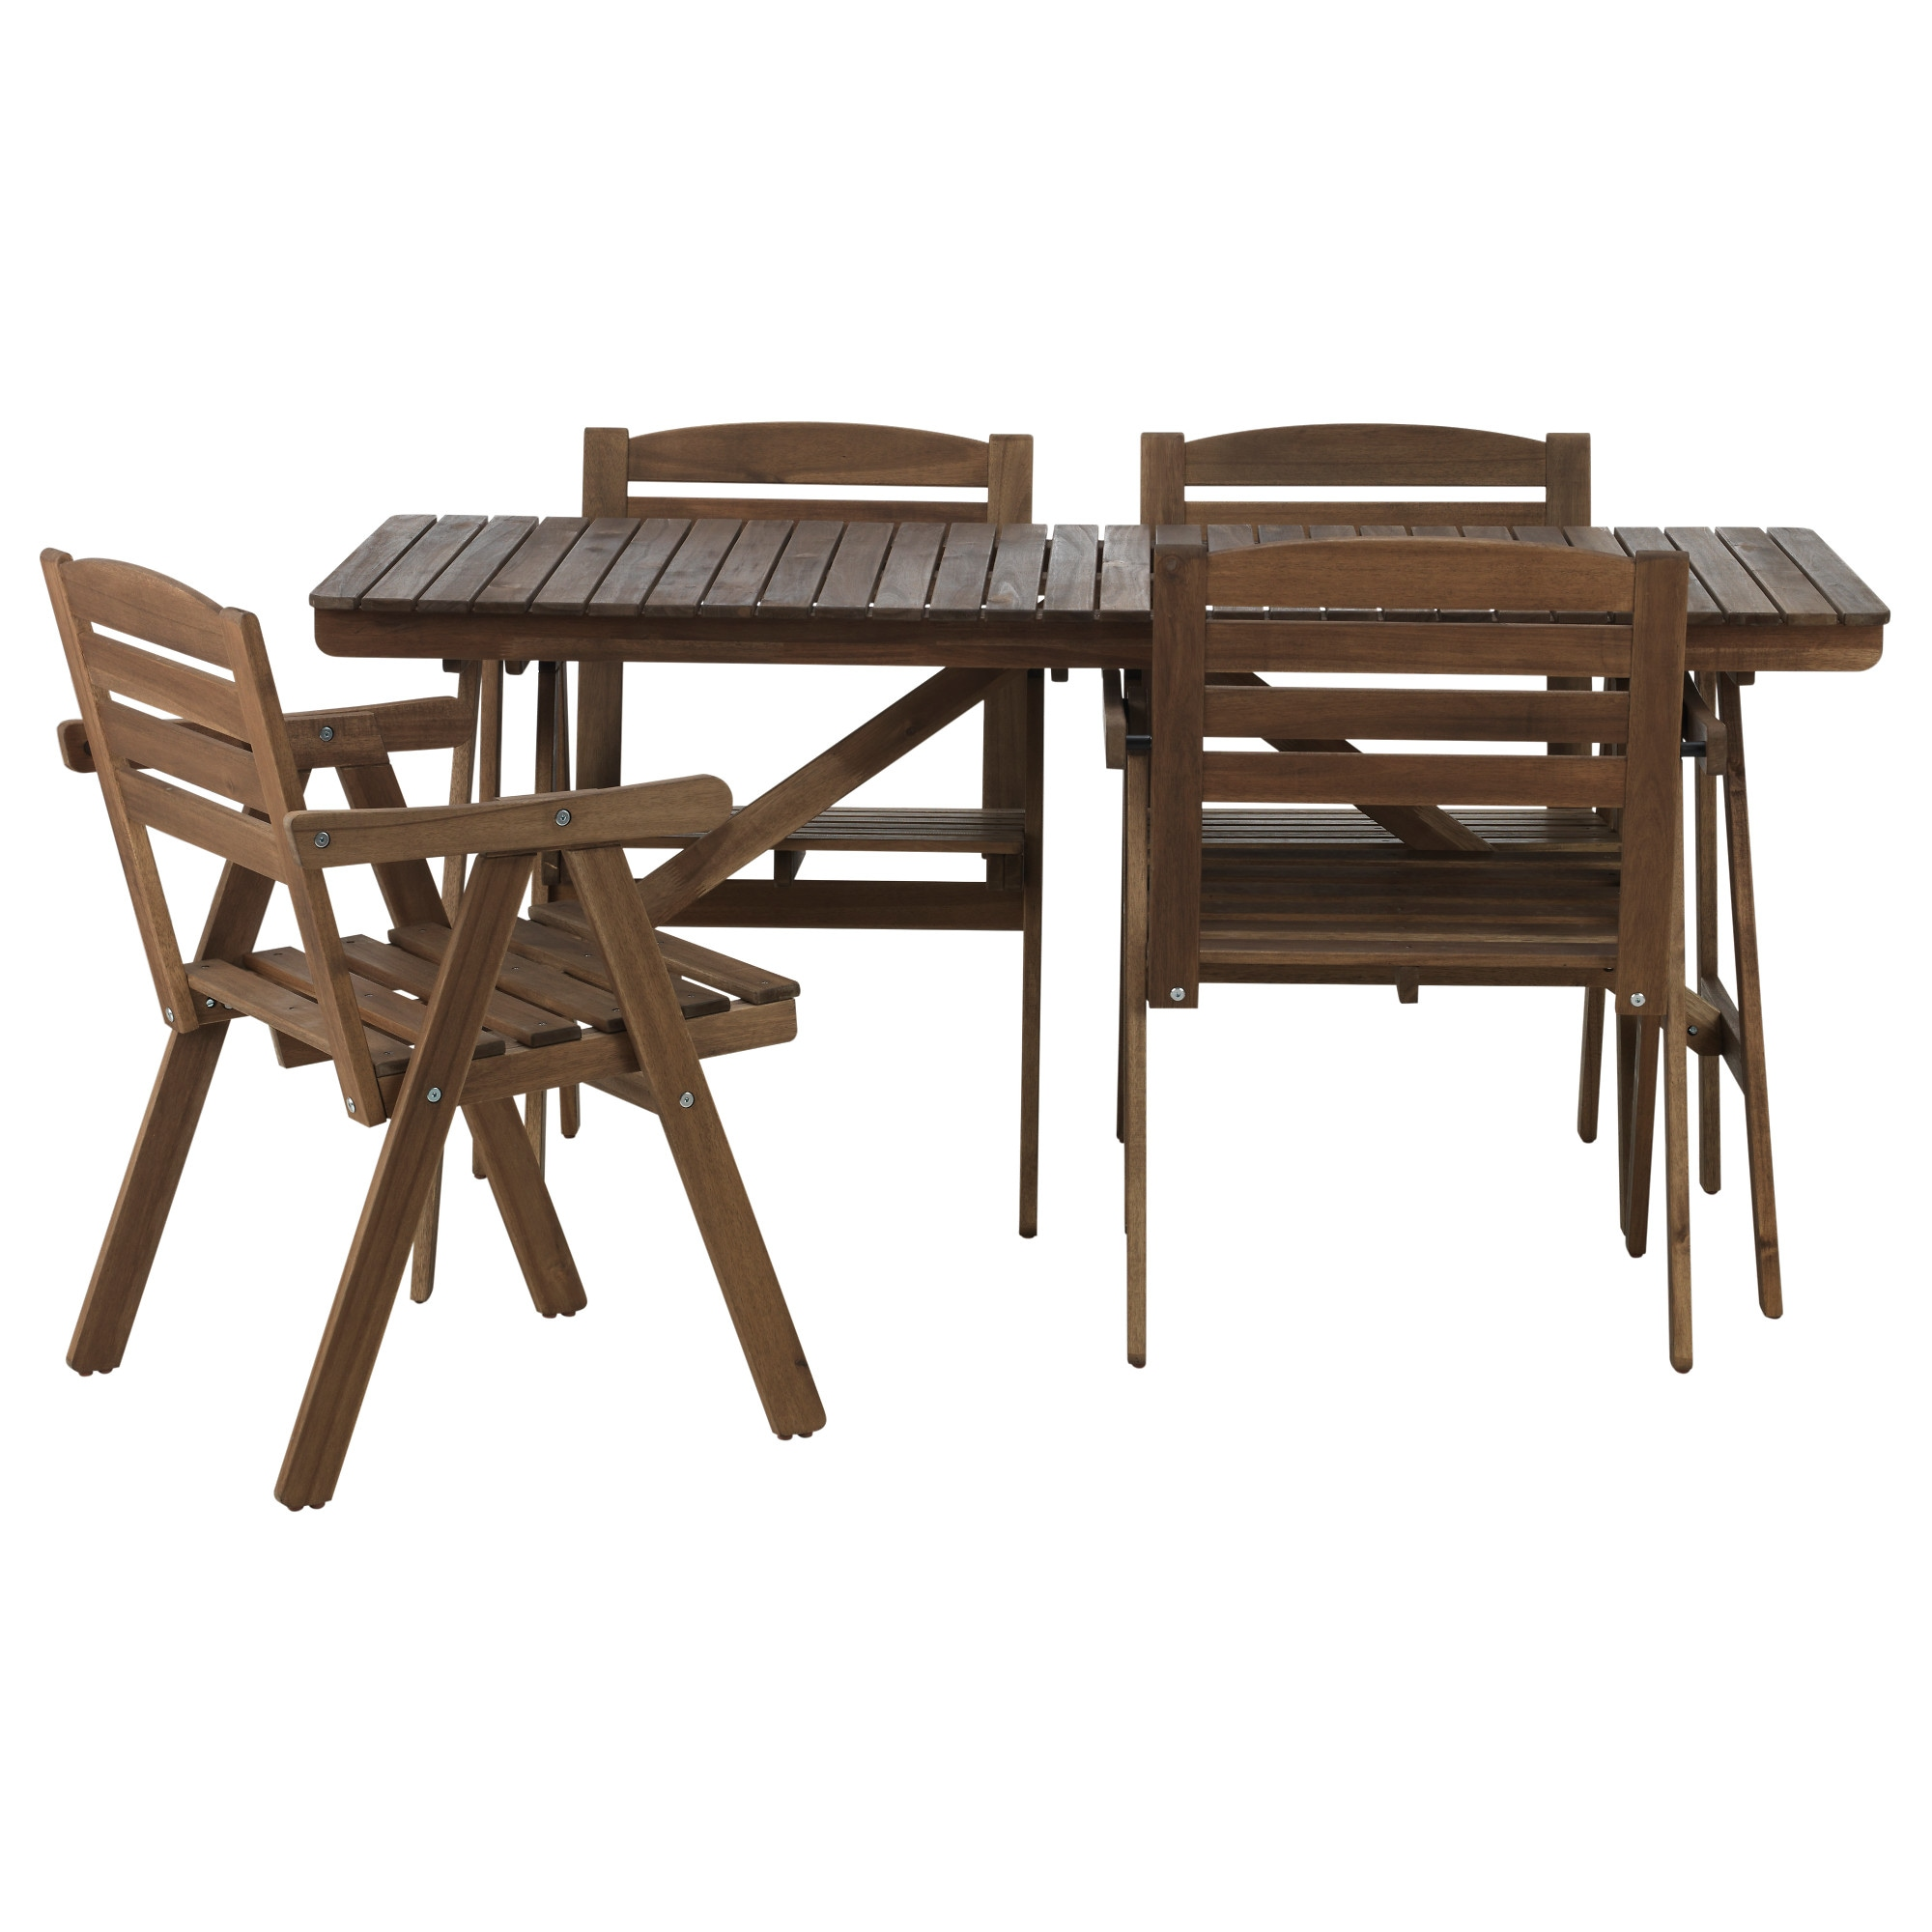 FALHOLMEN table+4 chairs w armrests, outdoor, grey-brown